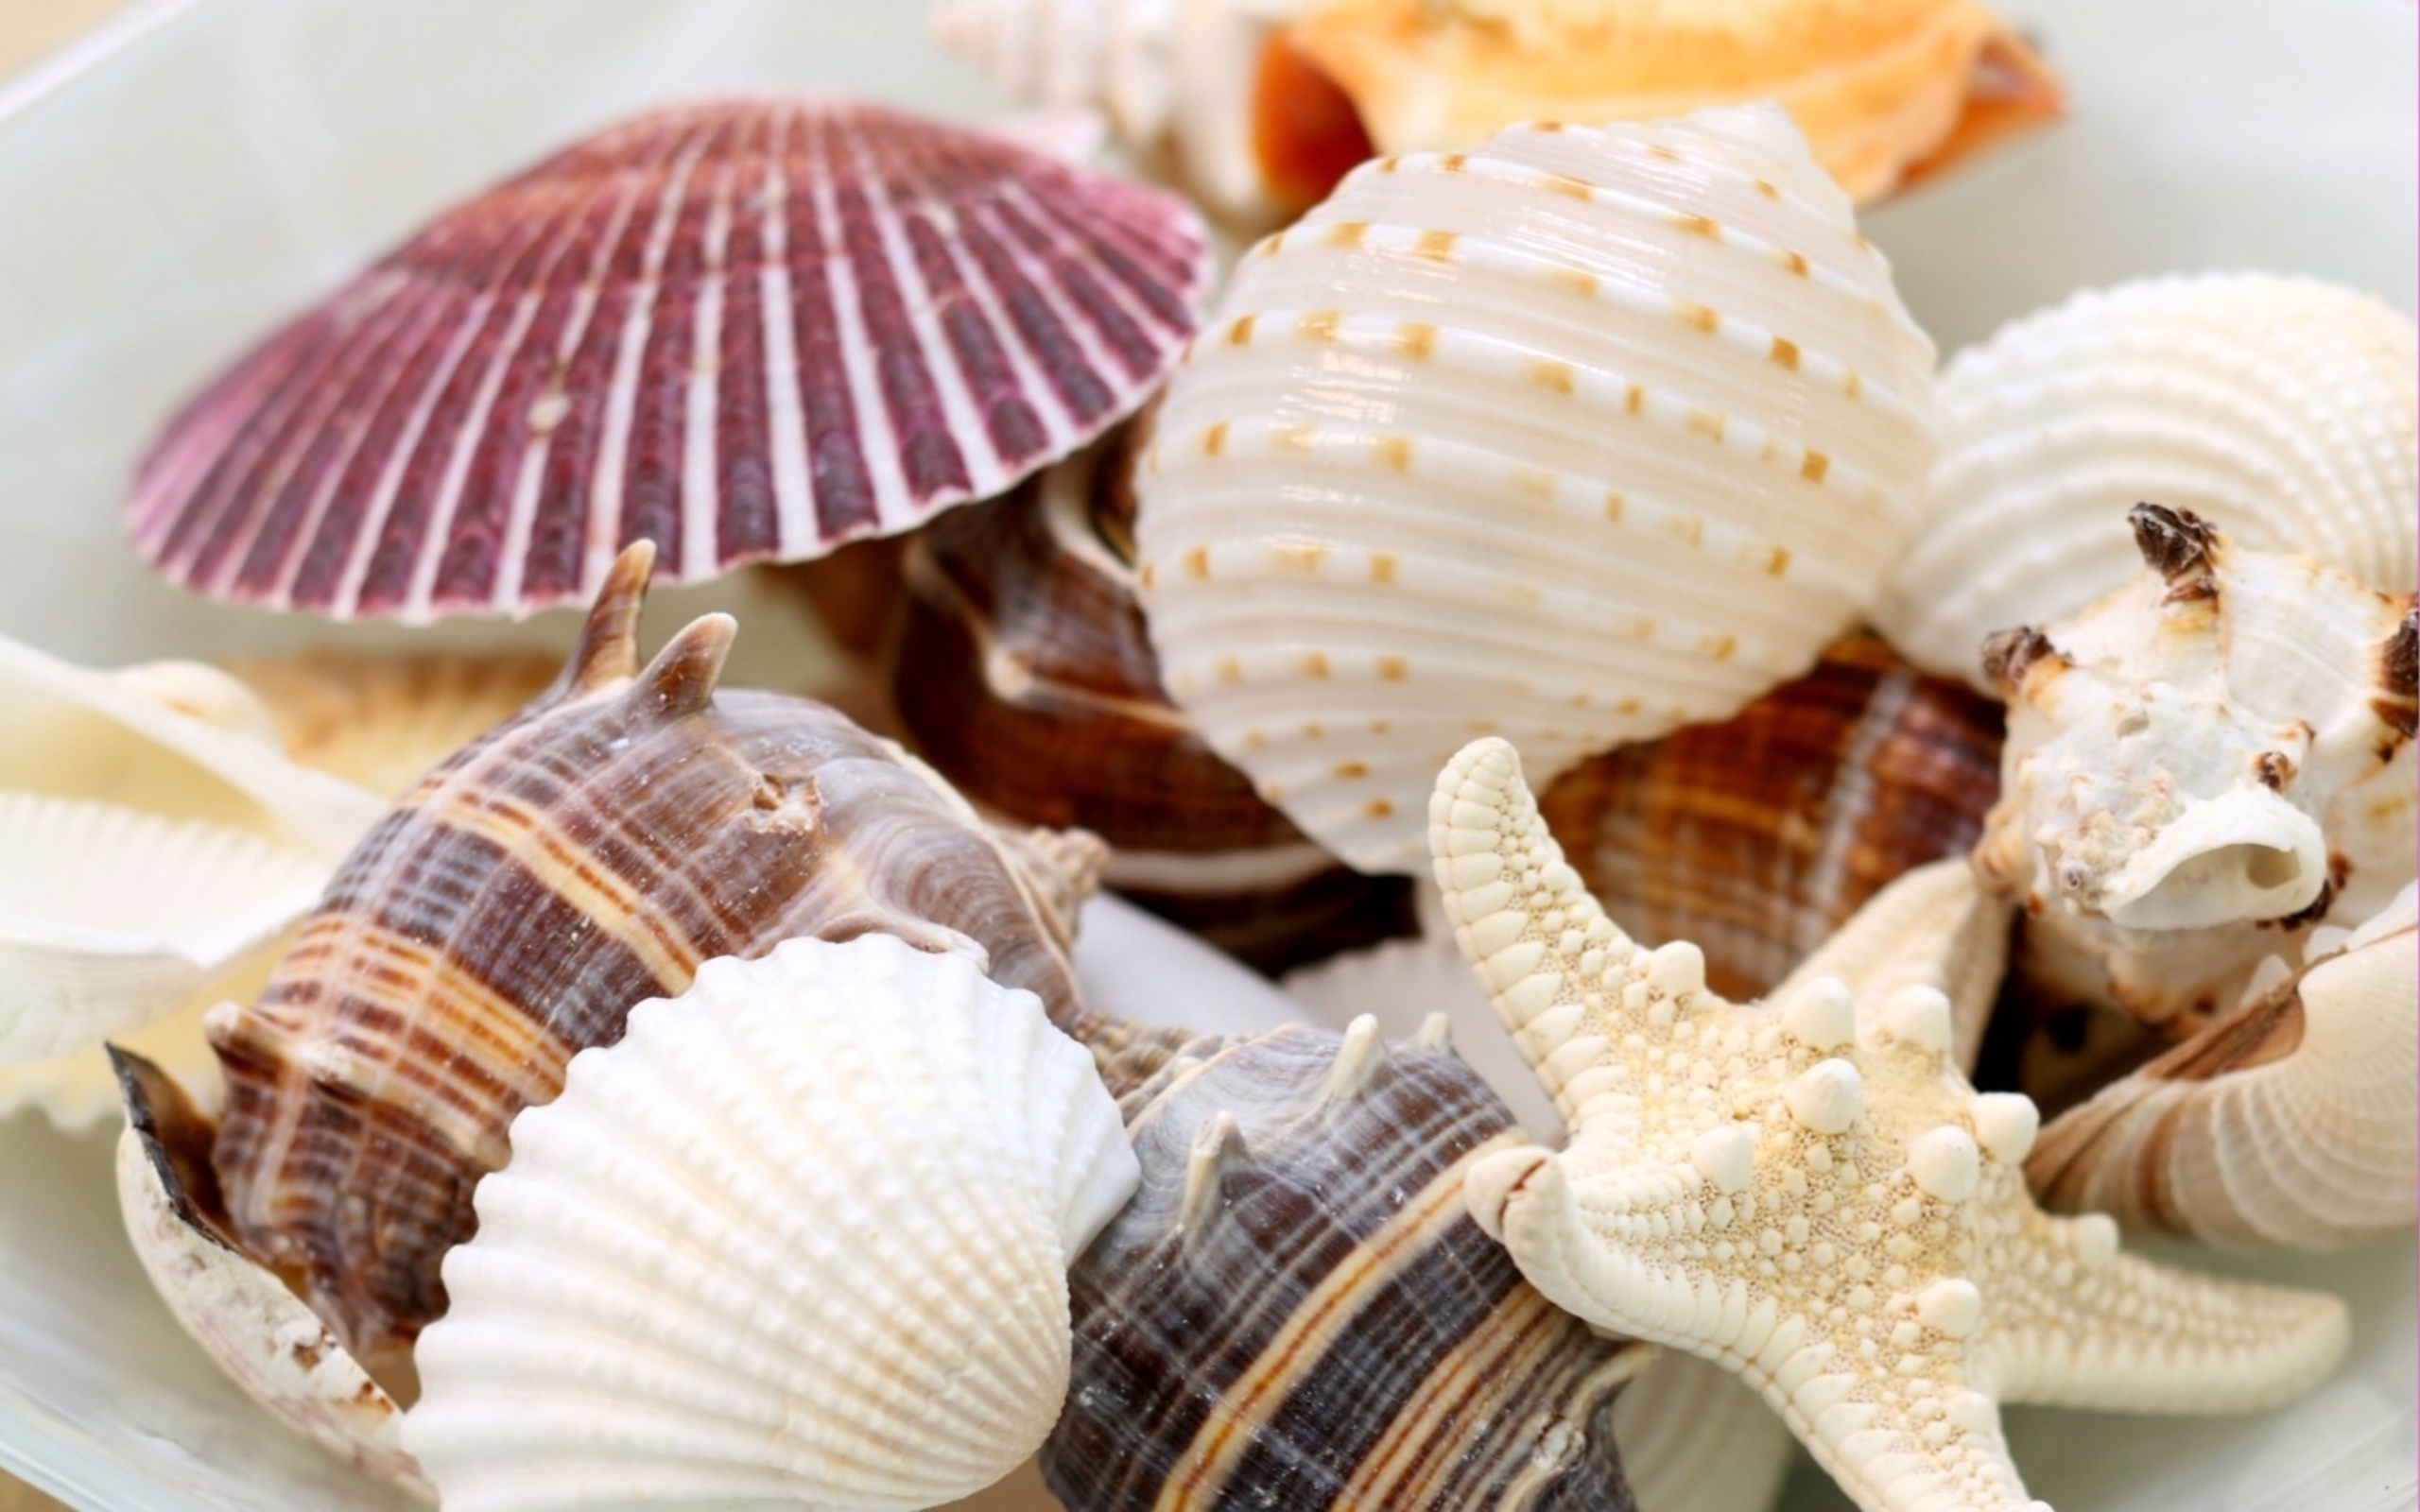 20598 download wallpaper Background, Shells, Starfish screensavers and pictures for free